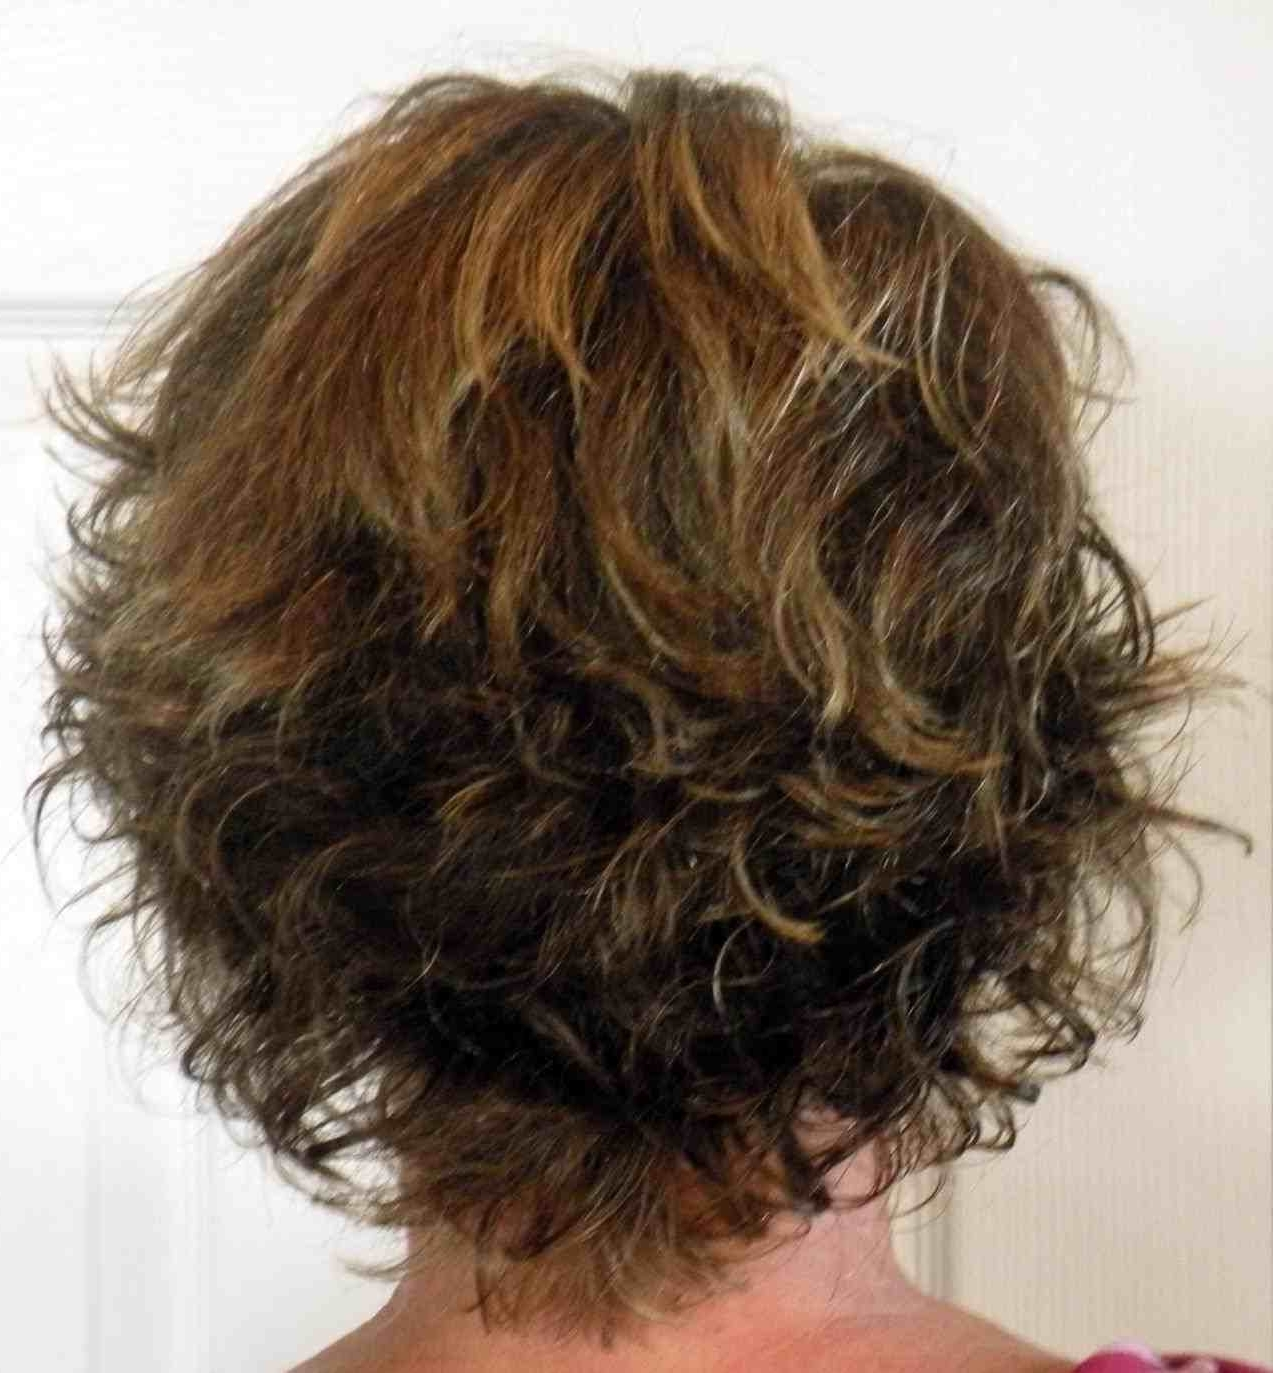 Best And Newest Medium Shaggy Hairstyles For Curly Hair Intended For Medium Curly Hairstyles Back View (View 5 of 15)